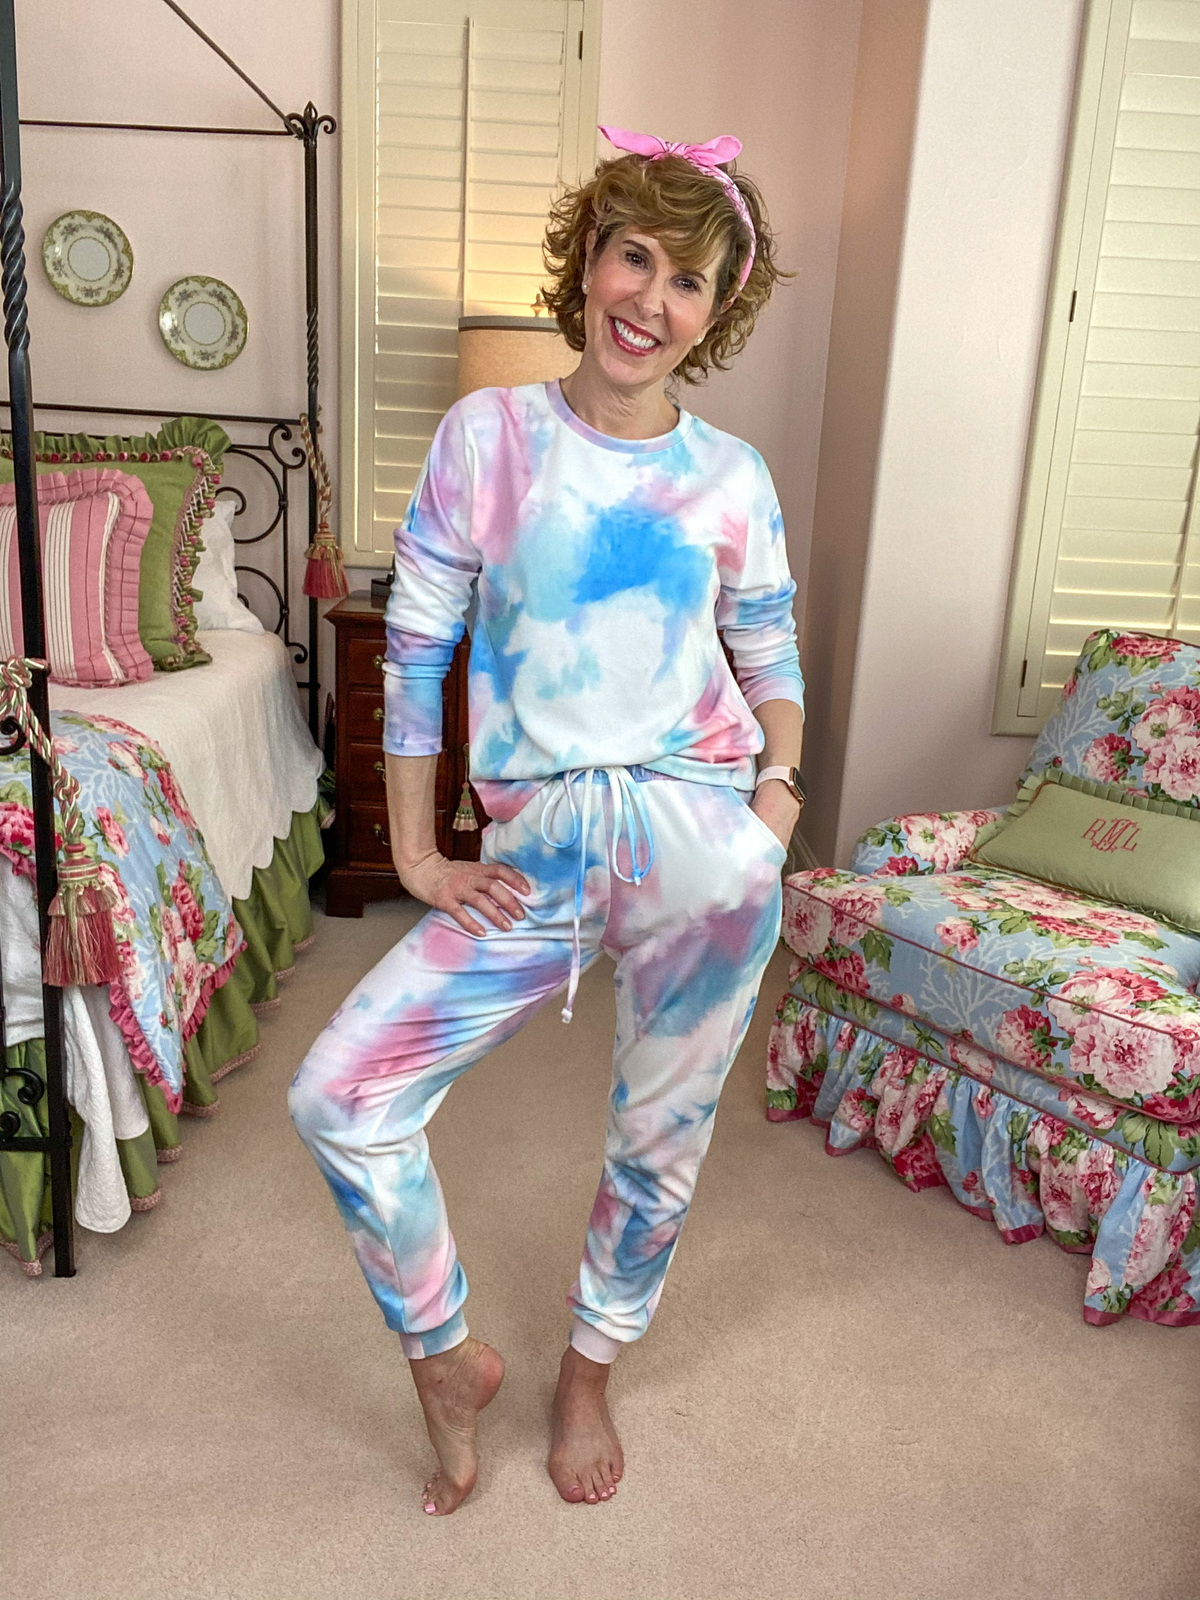 woman wearing tie dye loungewear standing in a bedroom